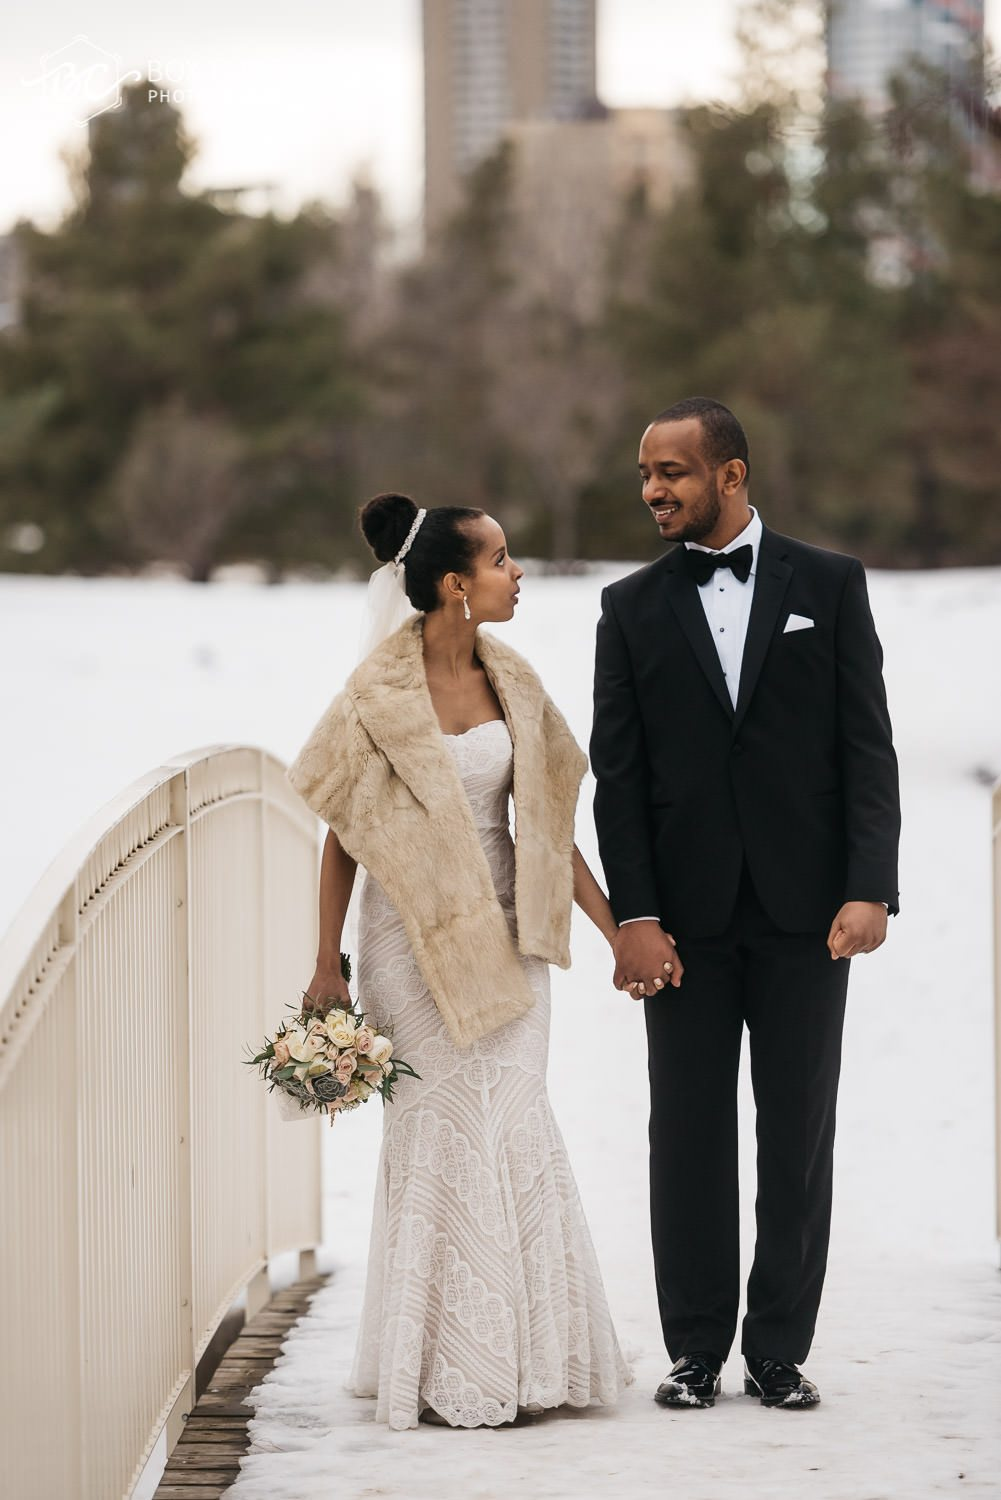 creative formal wedding portraits at muttart conservatory where bride and groom are holding hands